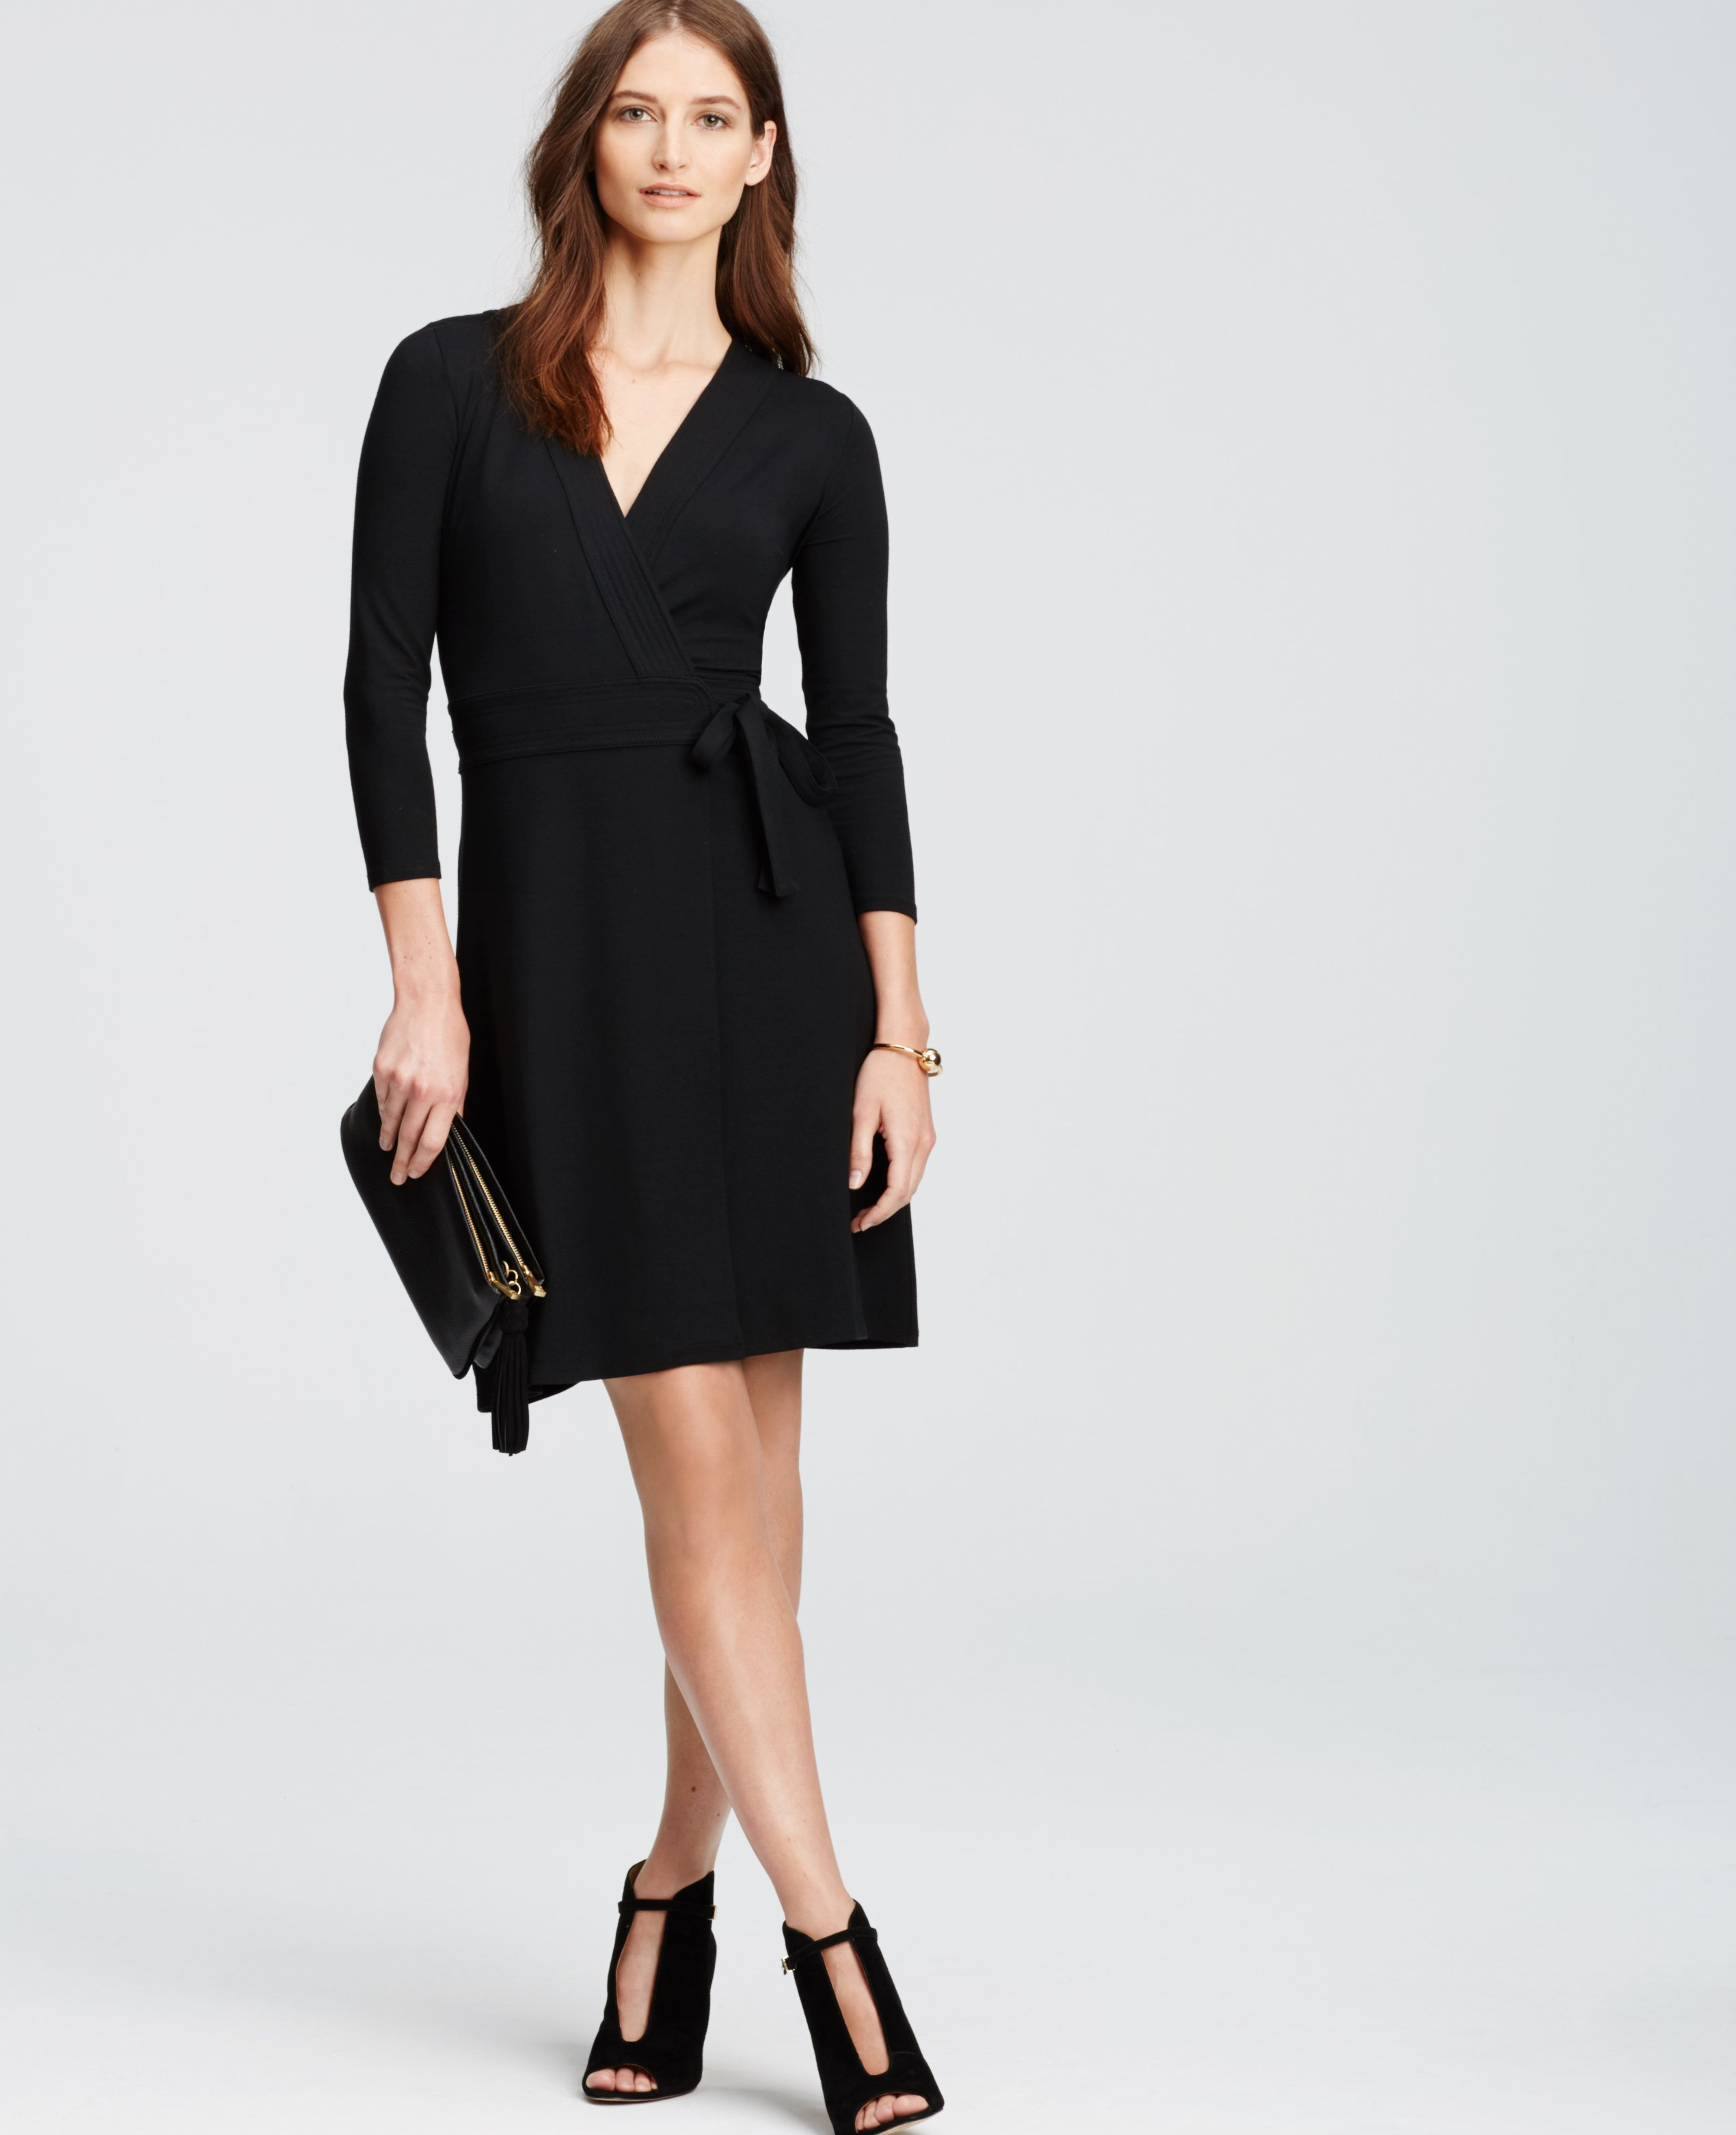 Ann taylor Petite 3/4 Sleeve Wrap Dress in Black | Lyst